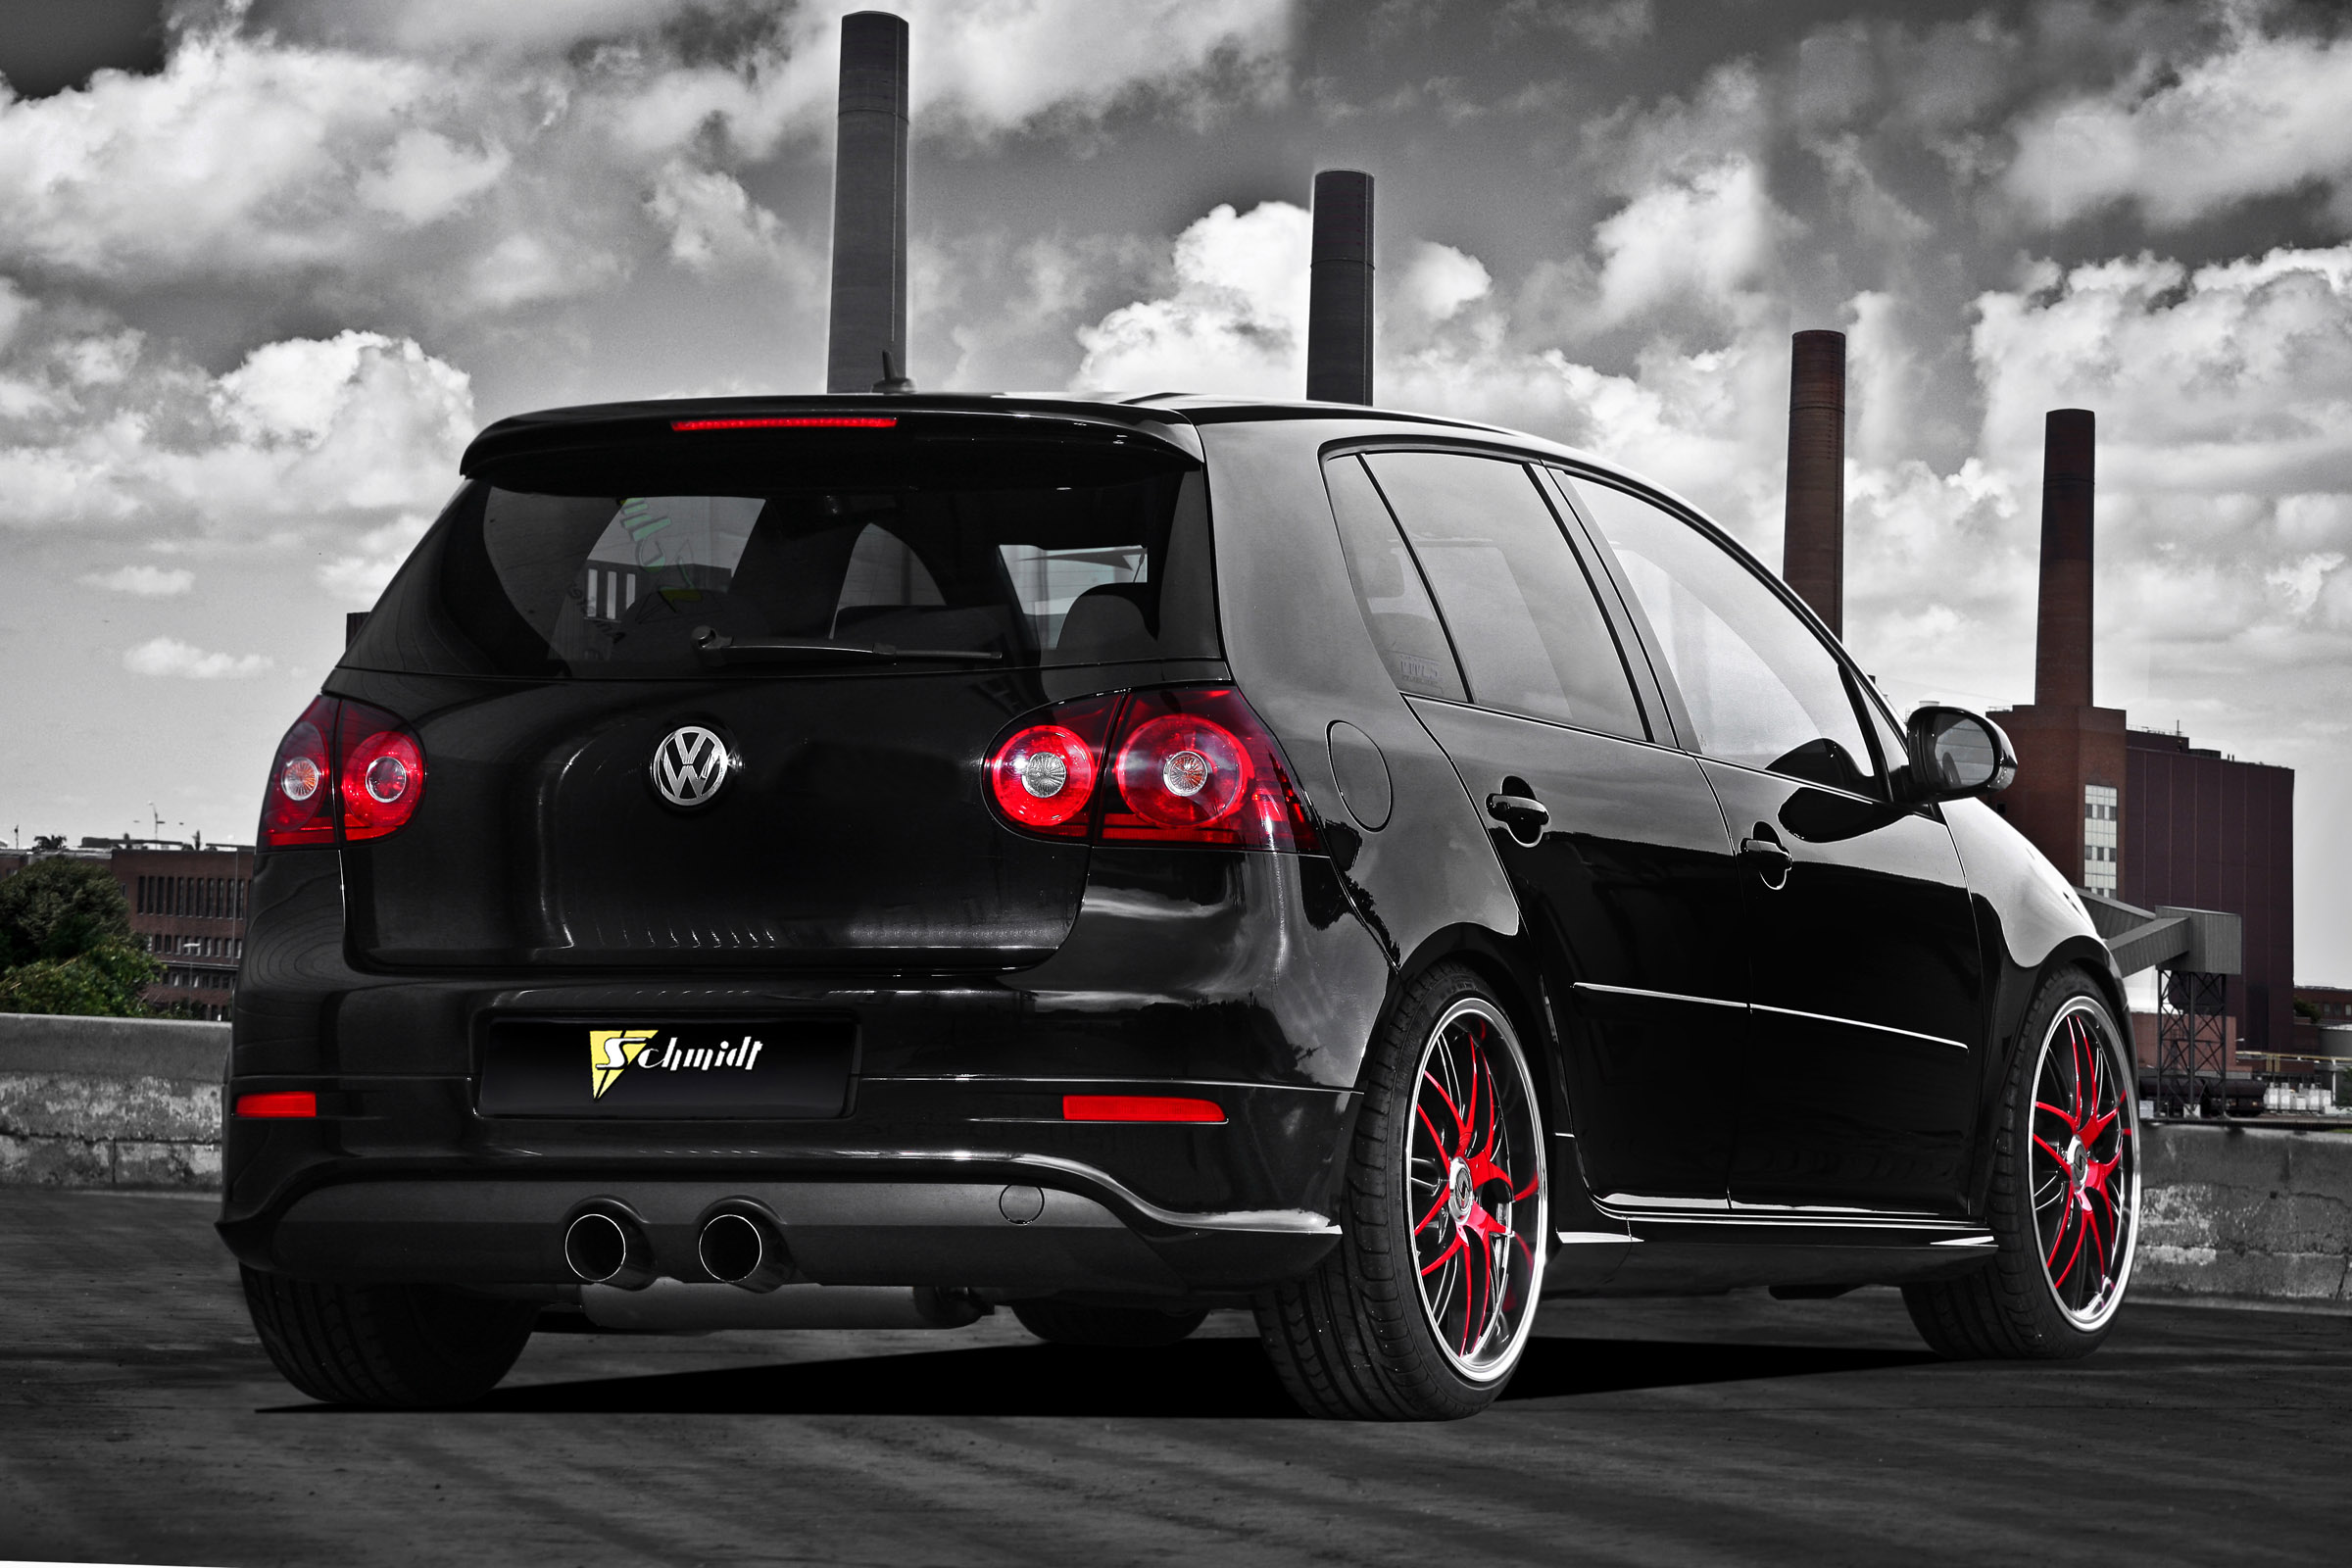 2011 schmidt vw golf v gti golf tuning volkswagon e wallpaper 2400x1600 84433 wallpaperup. Black Bedroom Furniture Sets. Home Design Ideas